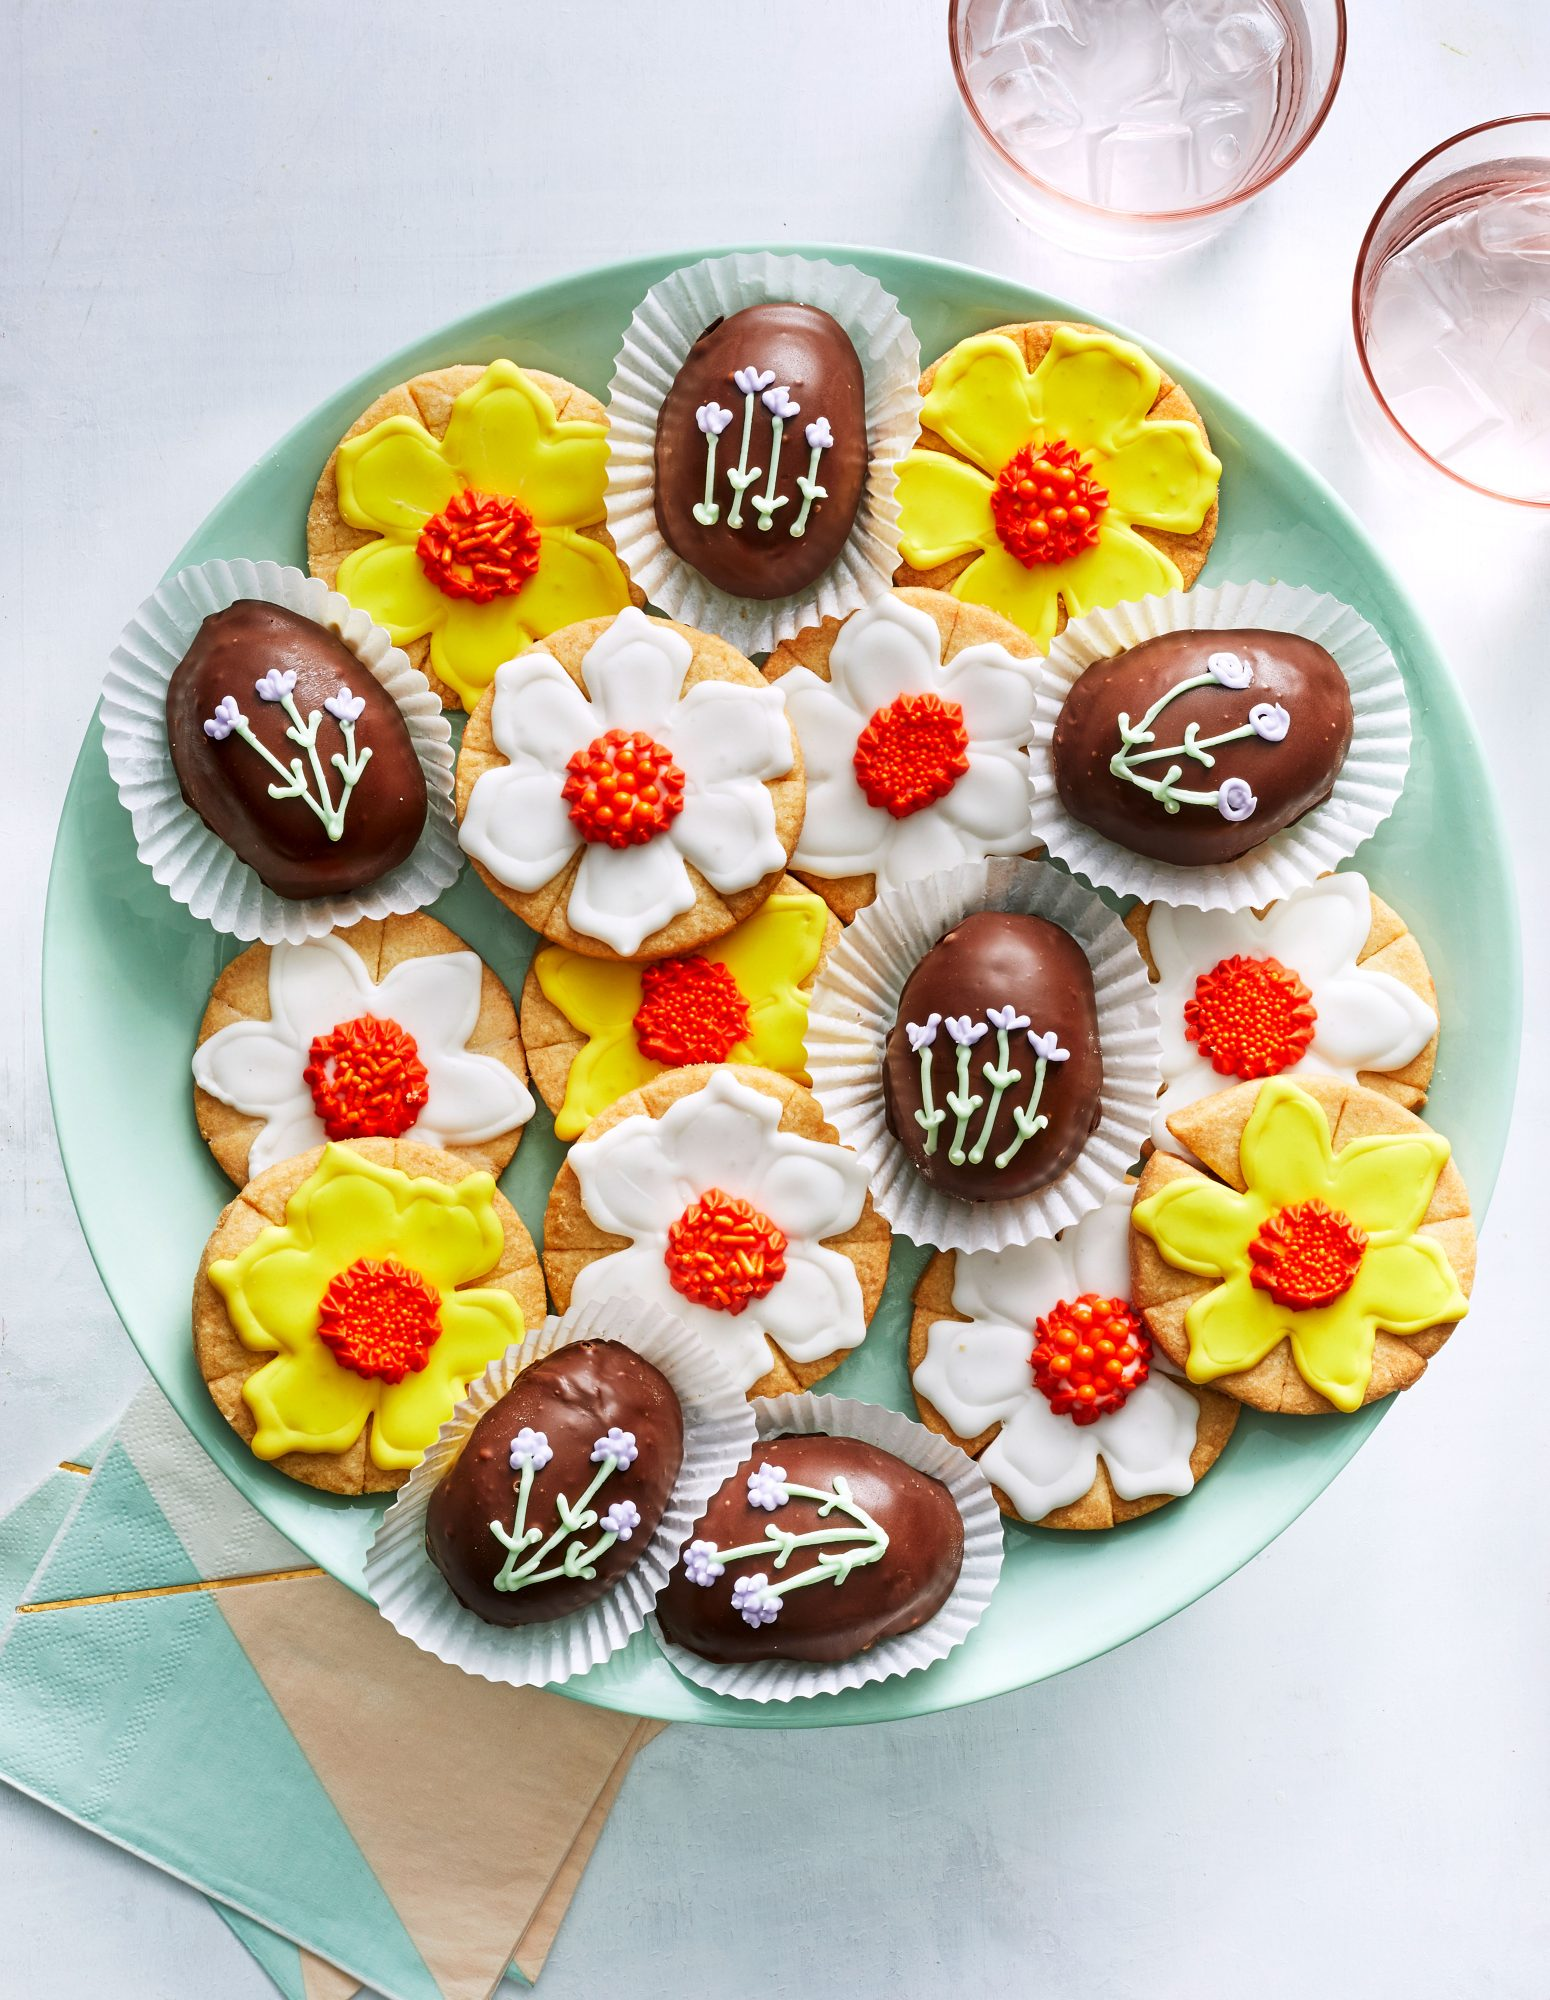 Chocolate-Peanut Butter Eggs and Daffodil Cookies